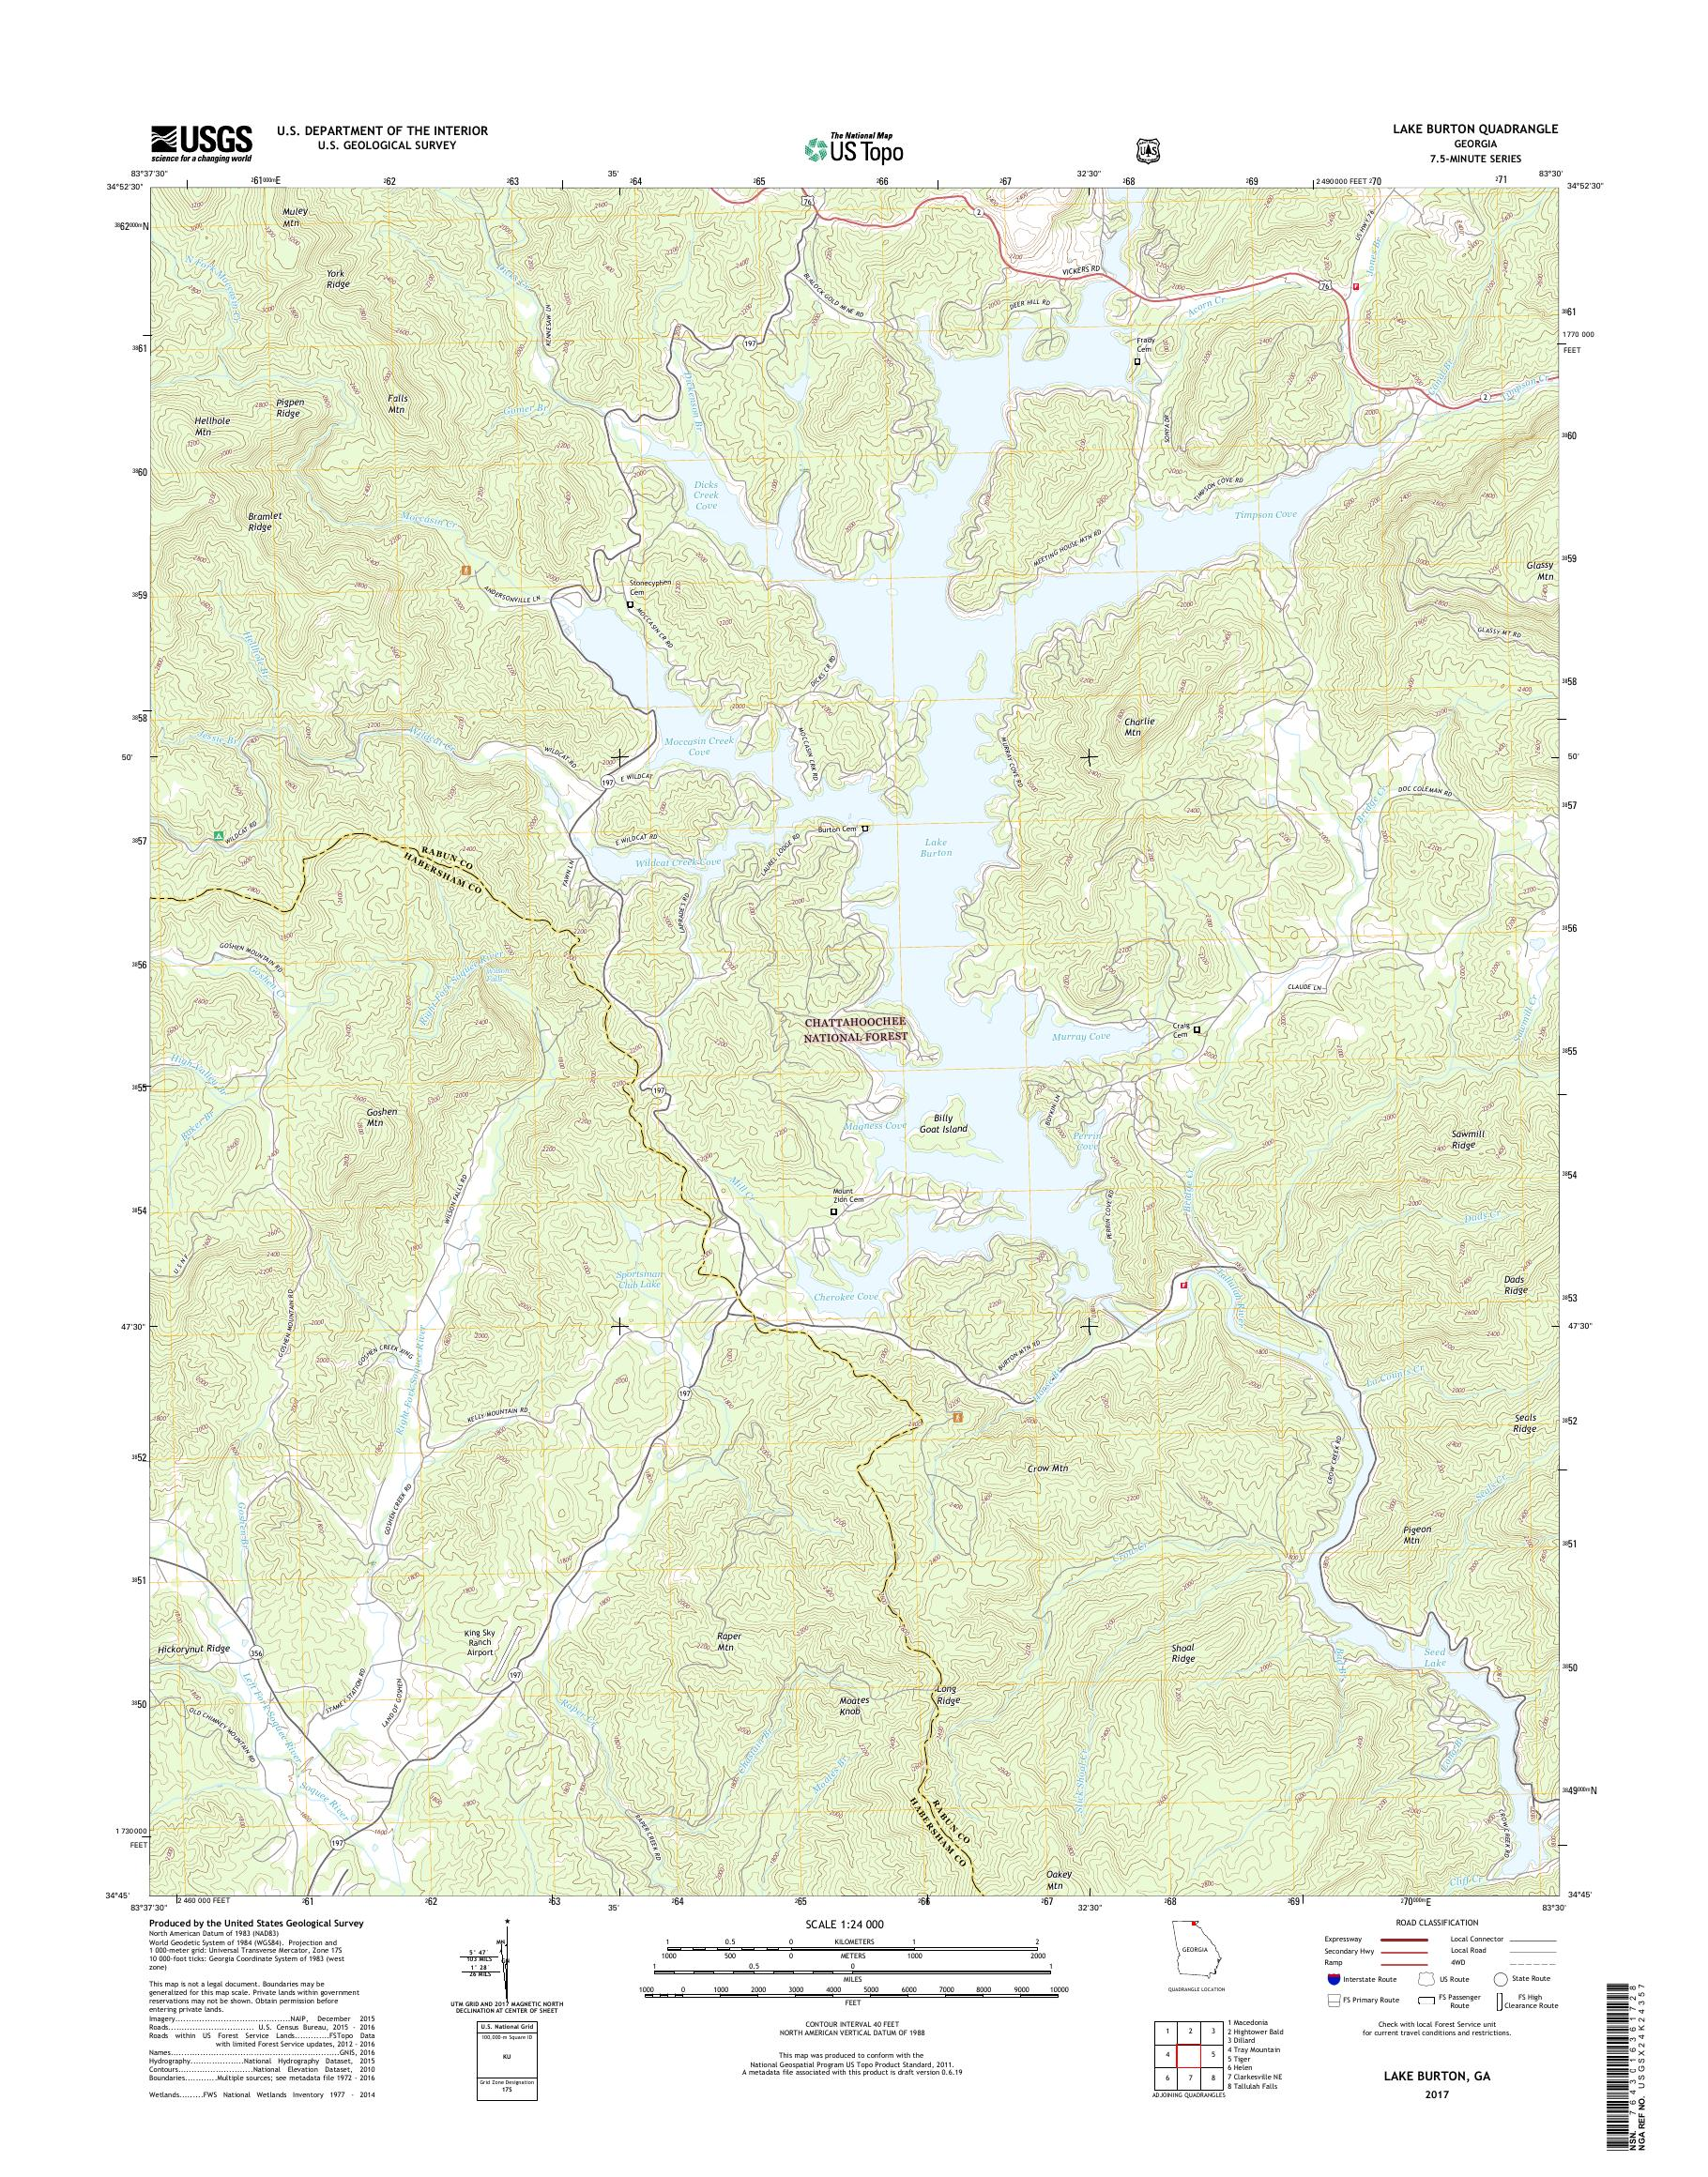 lake burton ga map Mytopo Lake Burton Georgia Usgs Quad Topo Map lake burton ga map